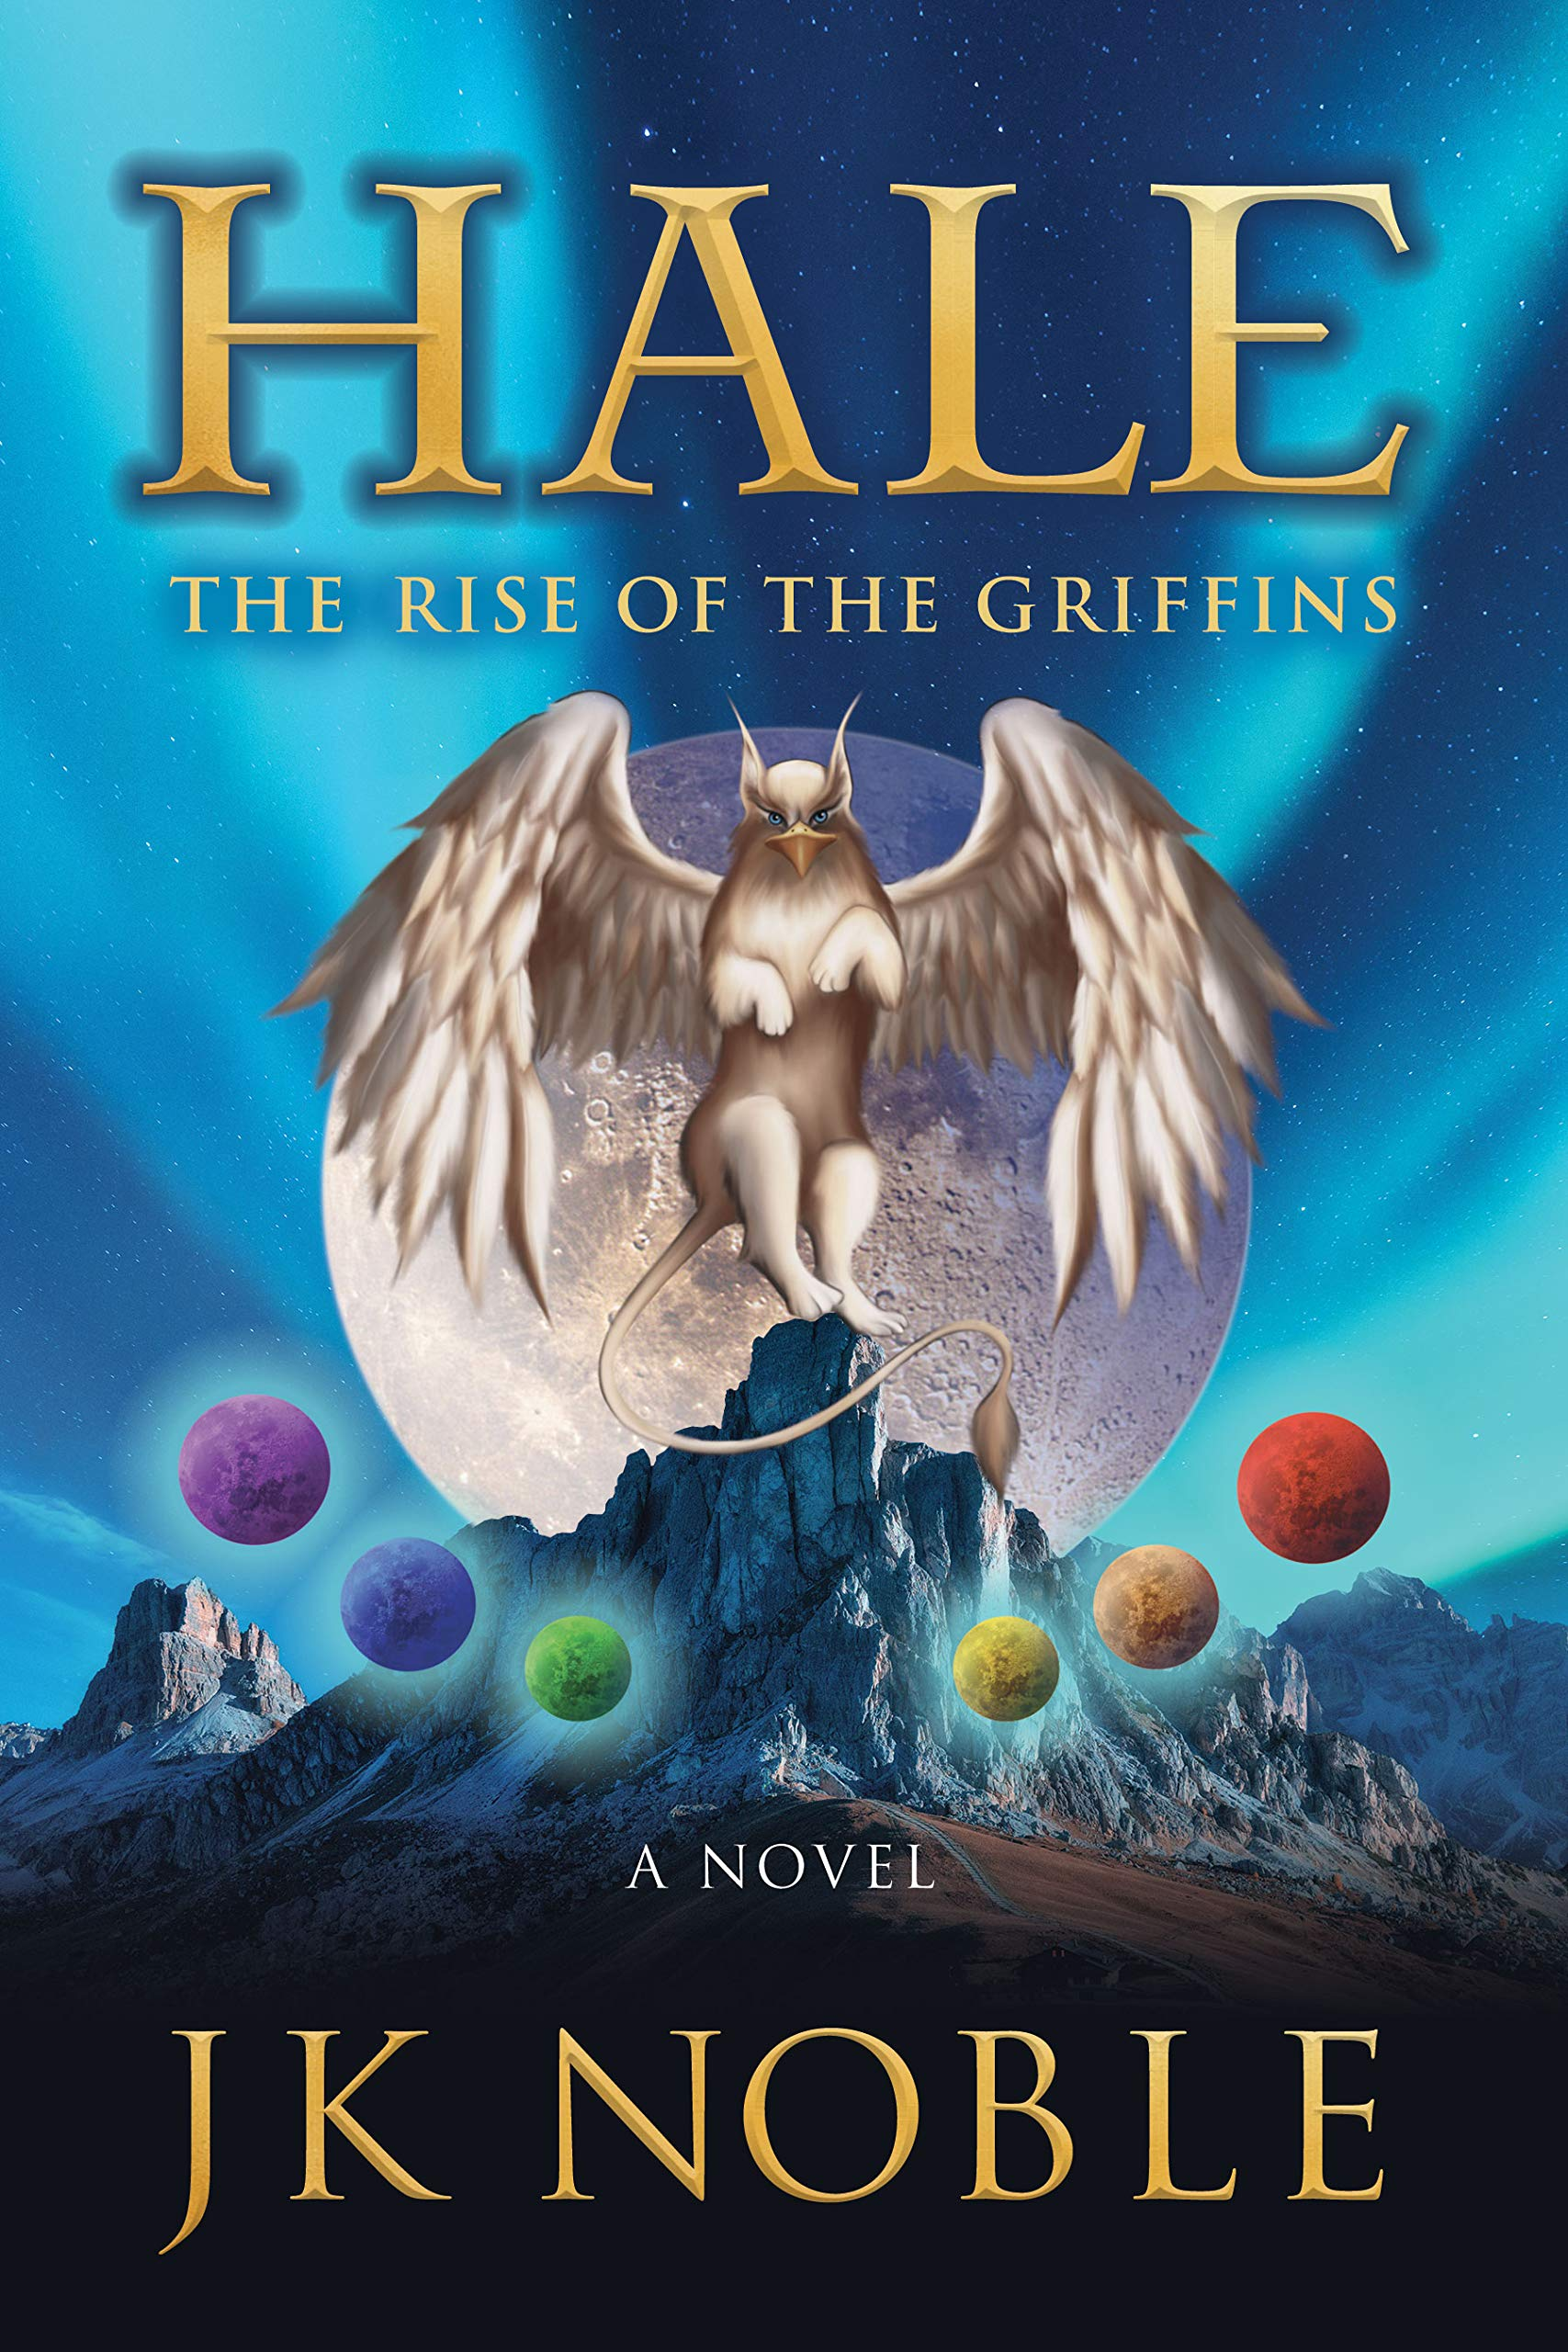 Hale: The Rise of the Griffins by J.K. Noble